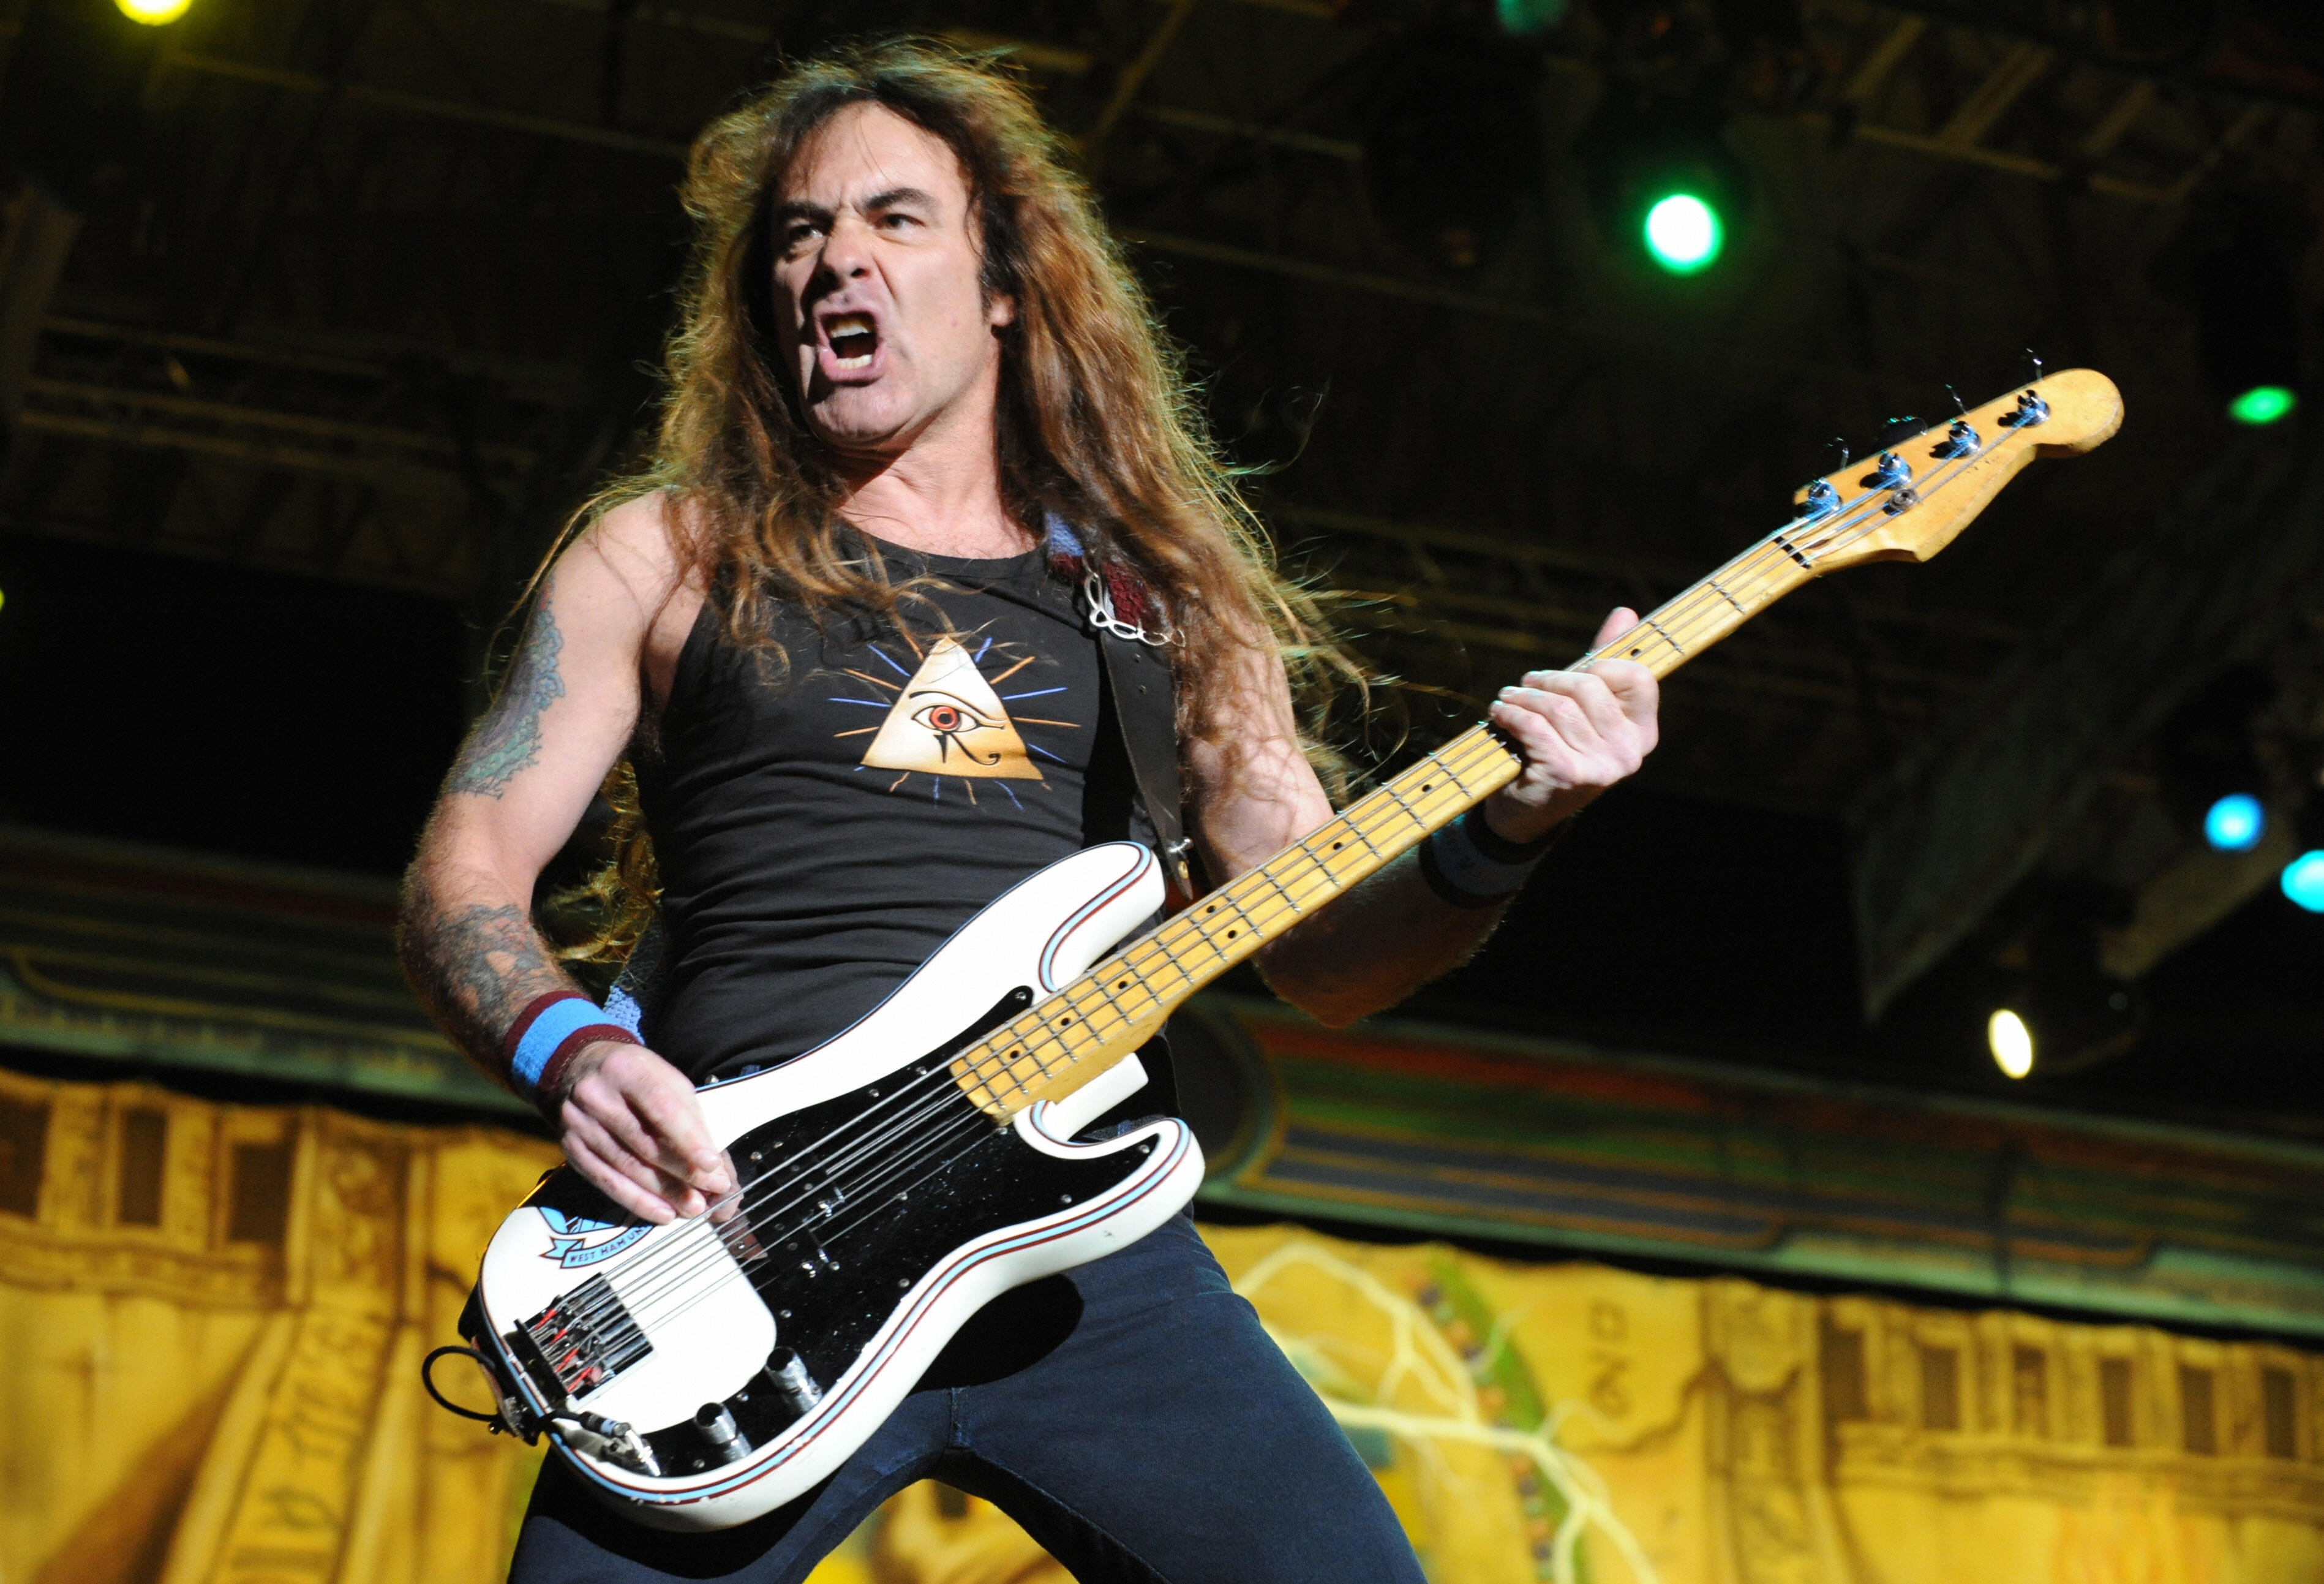 Steve Harris founded Iron Maiden in 1975.